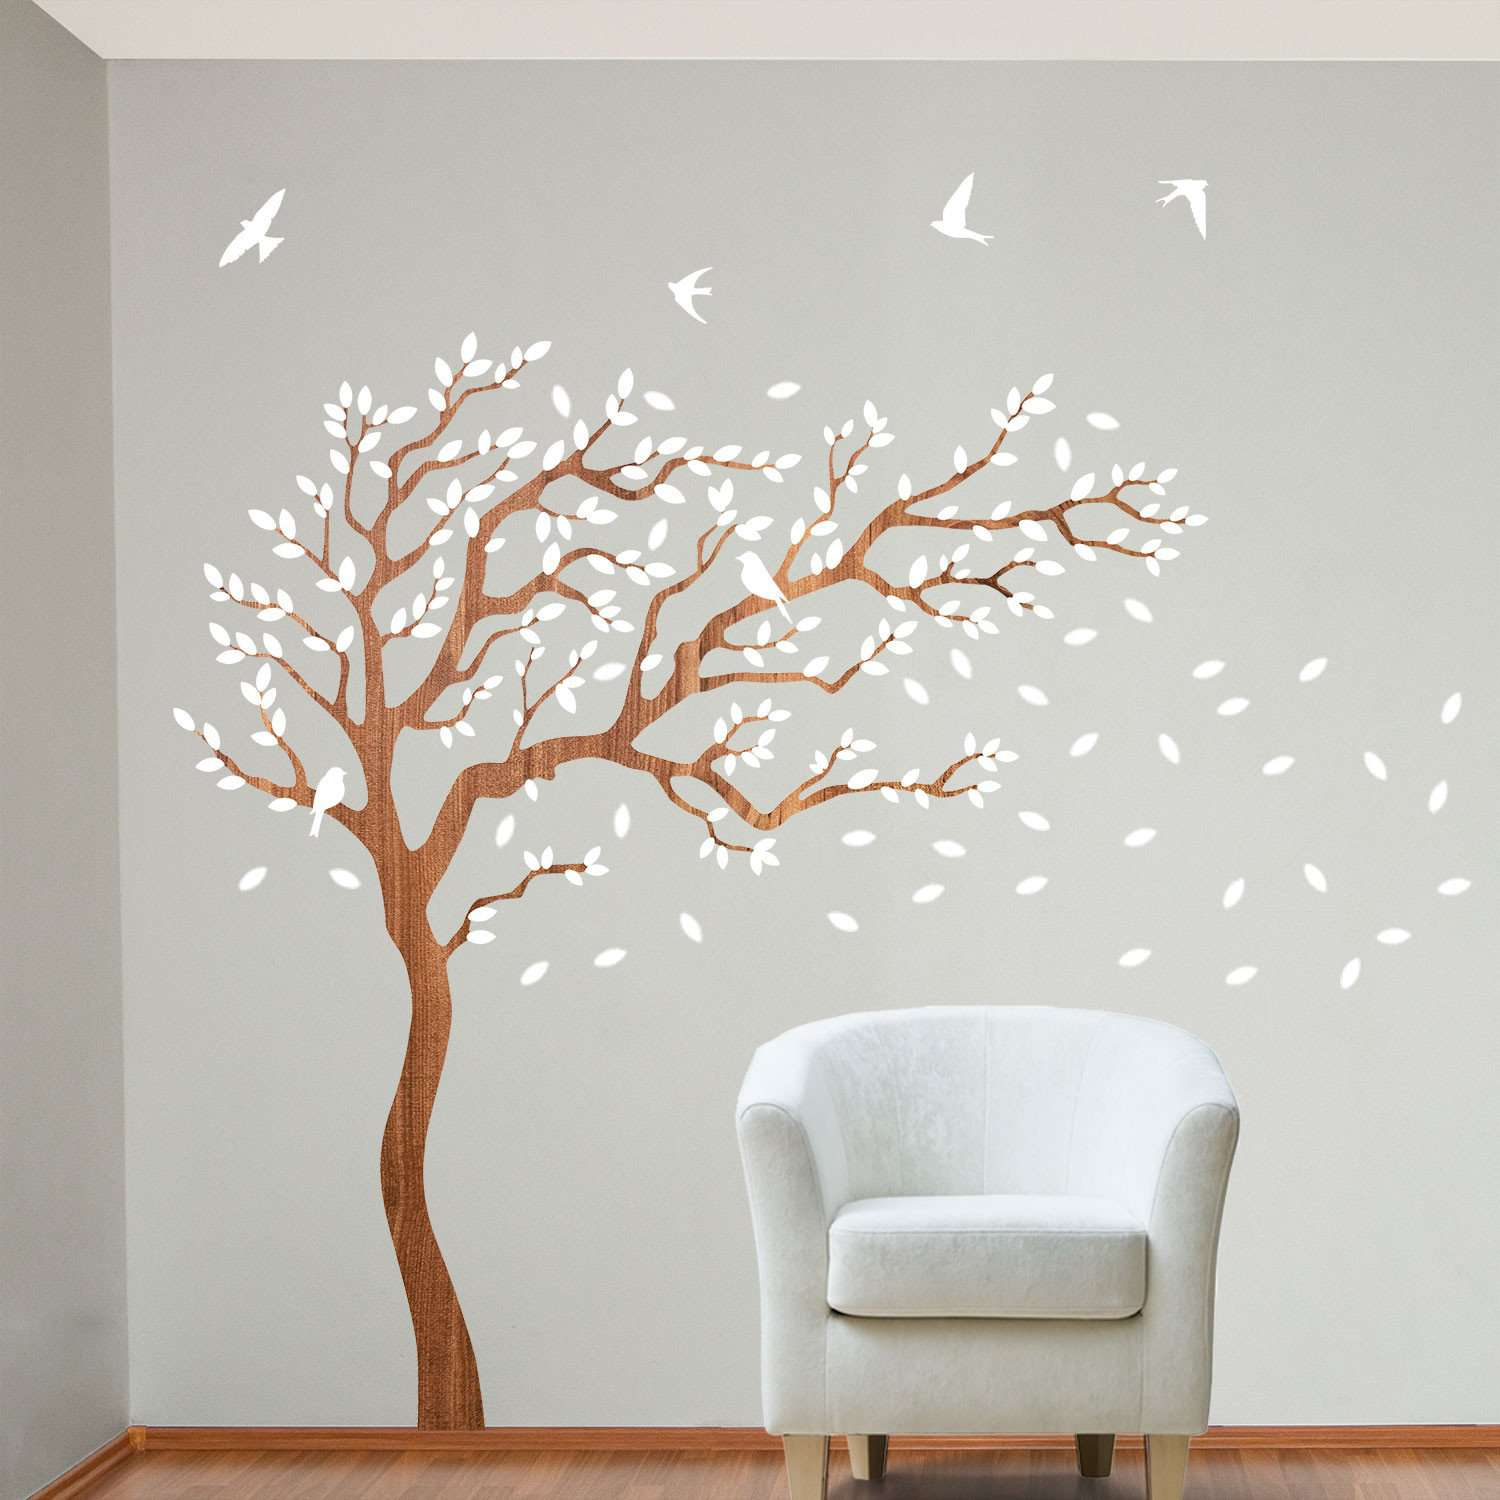 Breezy Tree Wall Decal and Bird Stickers in White and Wood